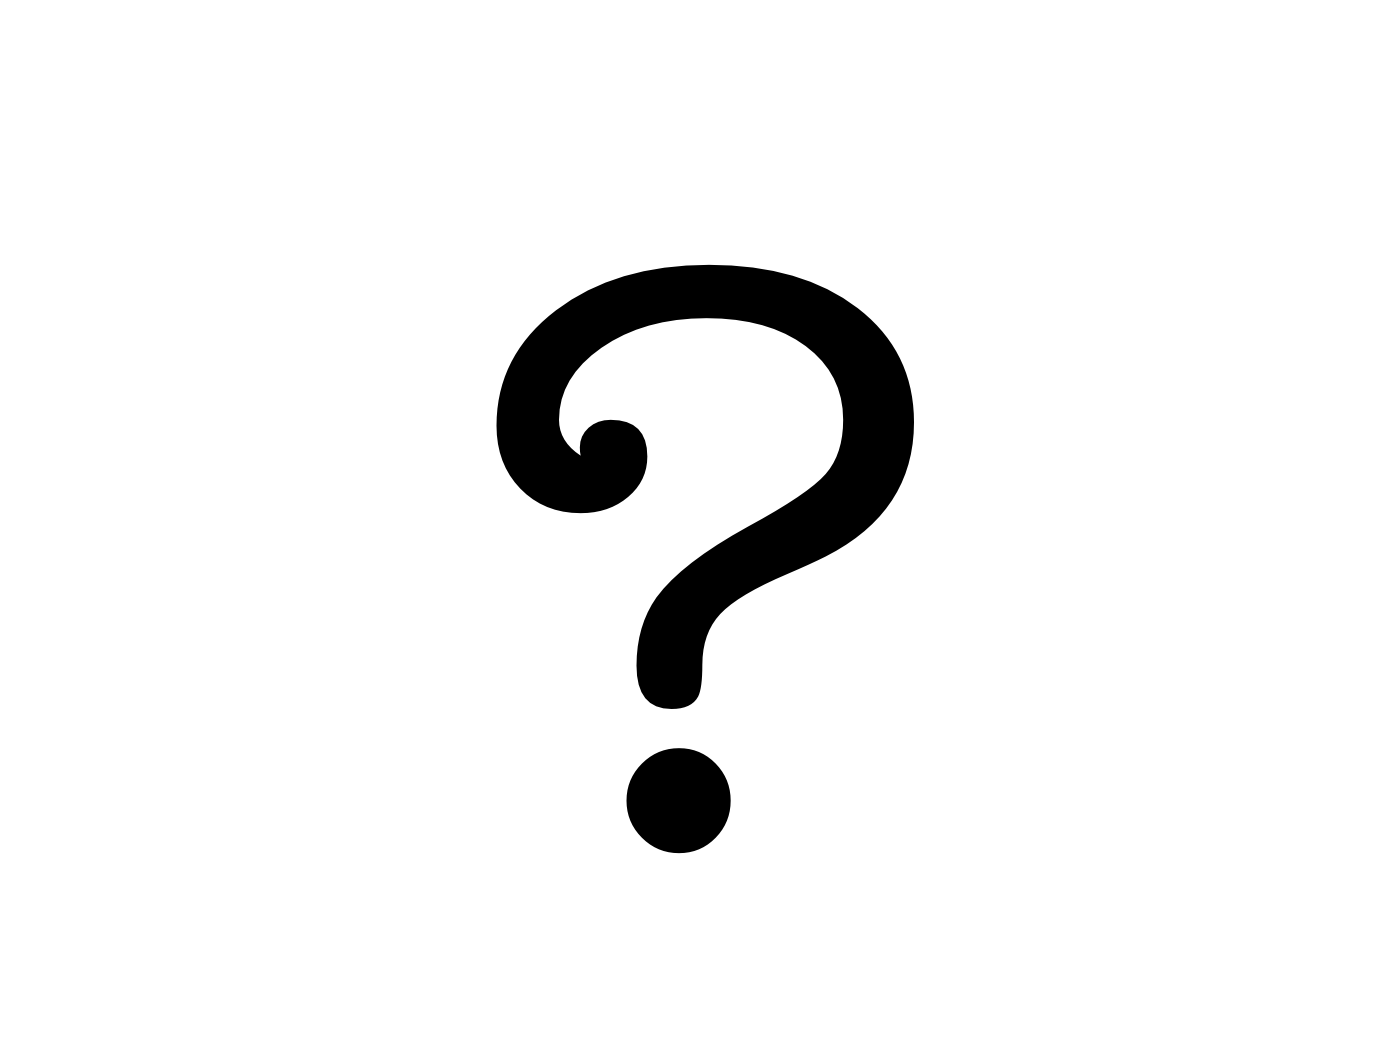 Black And White Question Mark Clipart With No Back Ground